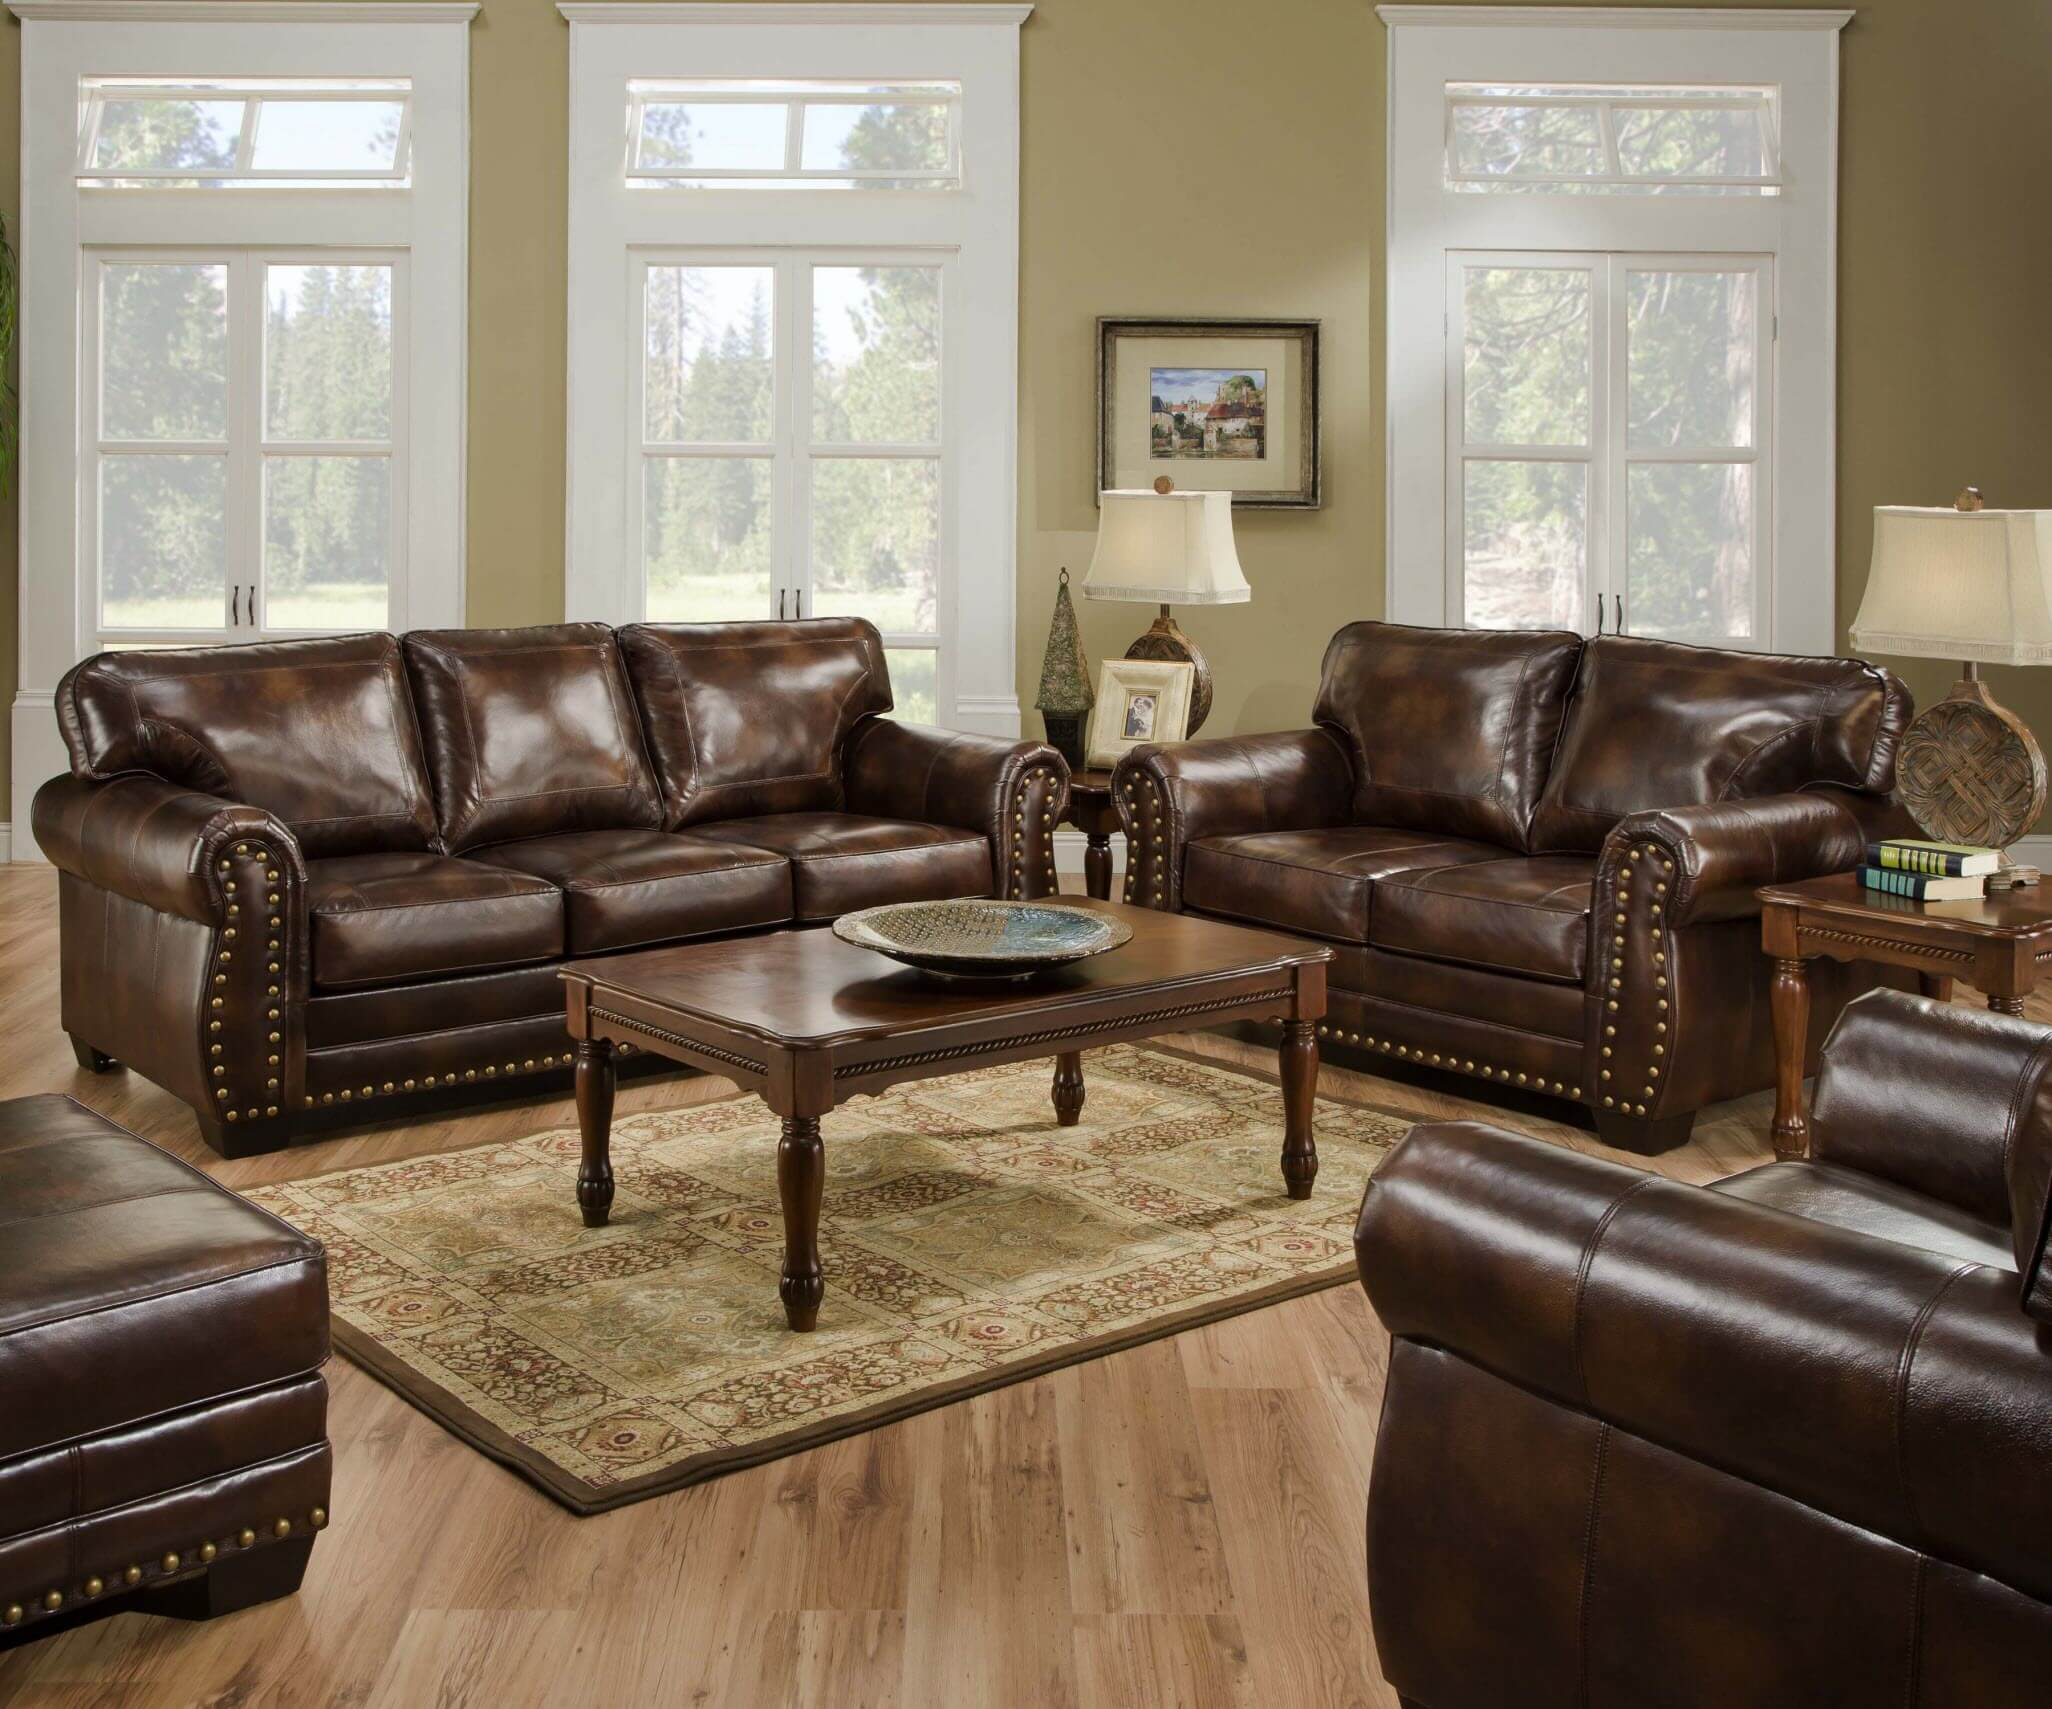 Living Room Furniture Made In The Usa Sofa Loveseat And Chair Set All Leather Tufted Seat Sofa Loveseat